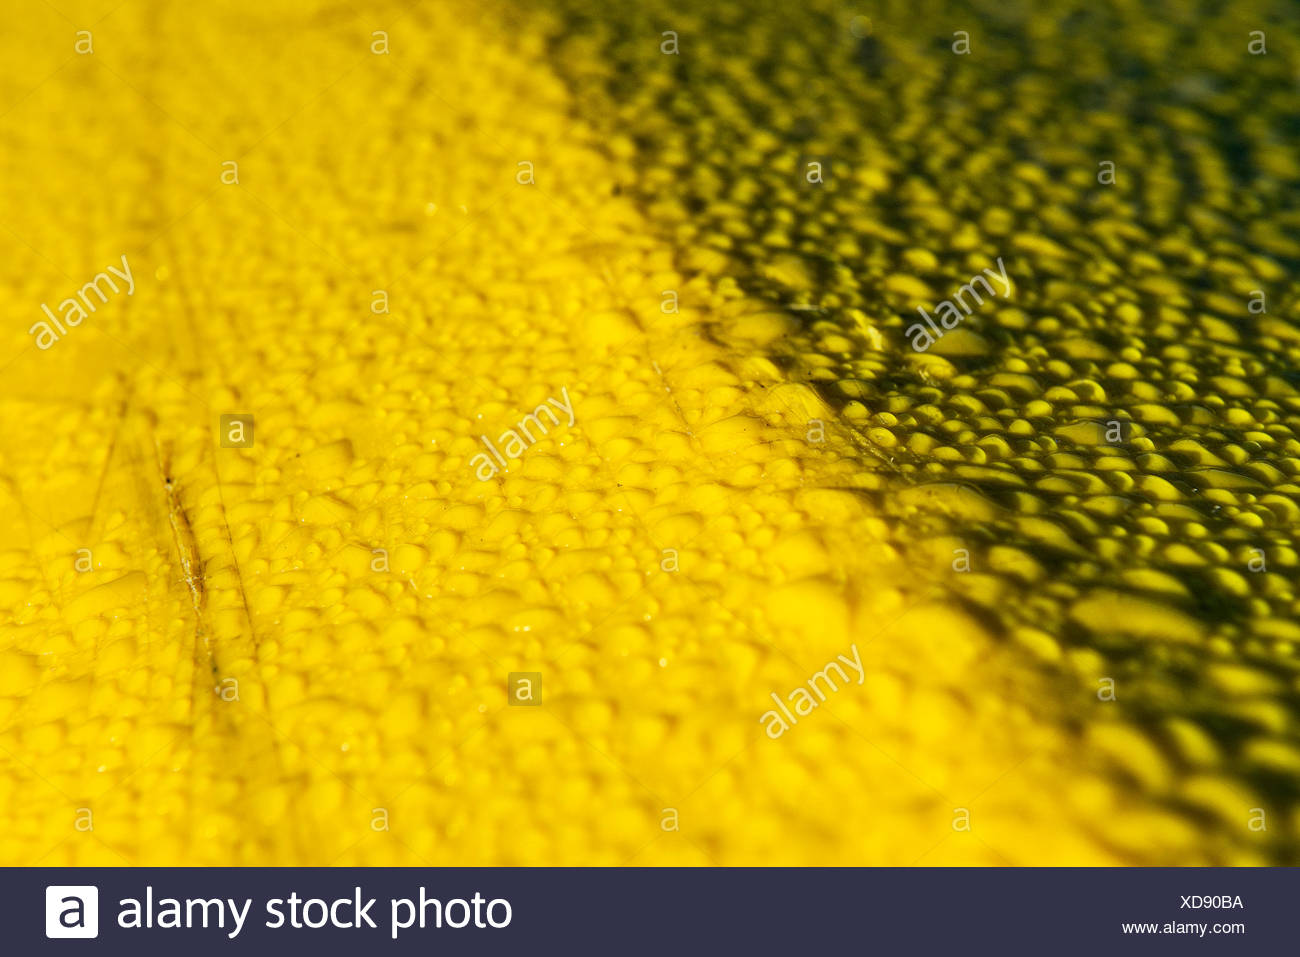 Water beading up on a yellow plastic surface. Stock Photo